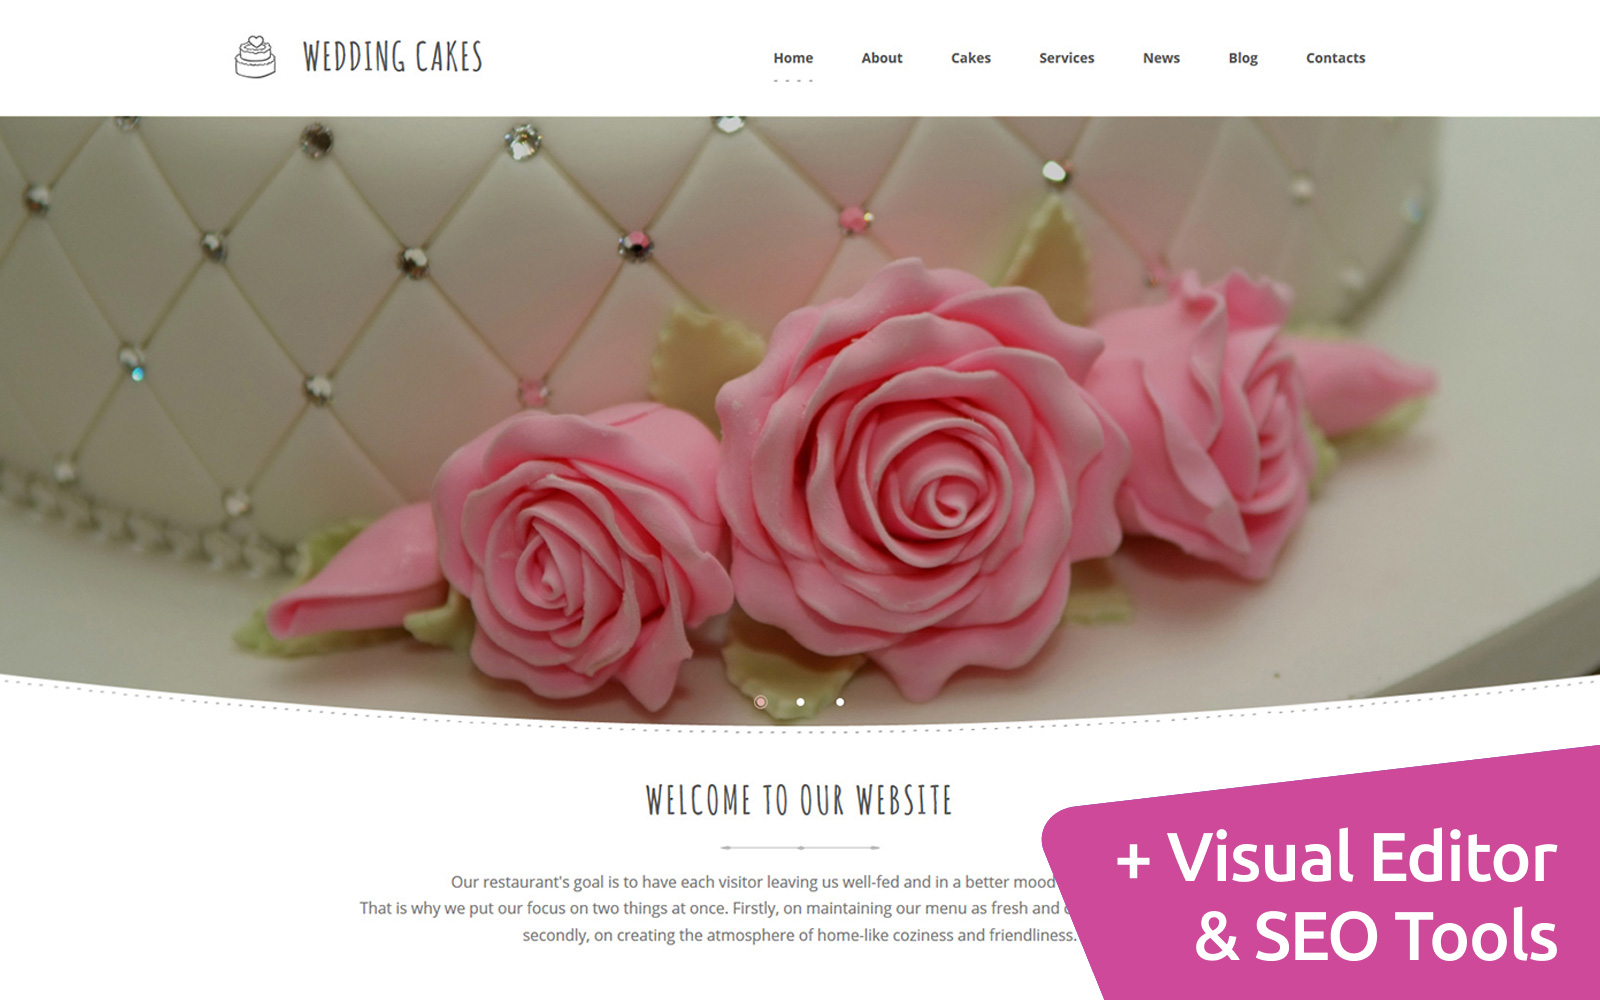 Wedding Cakes Moto CMS 3 Template